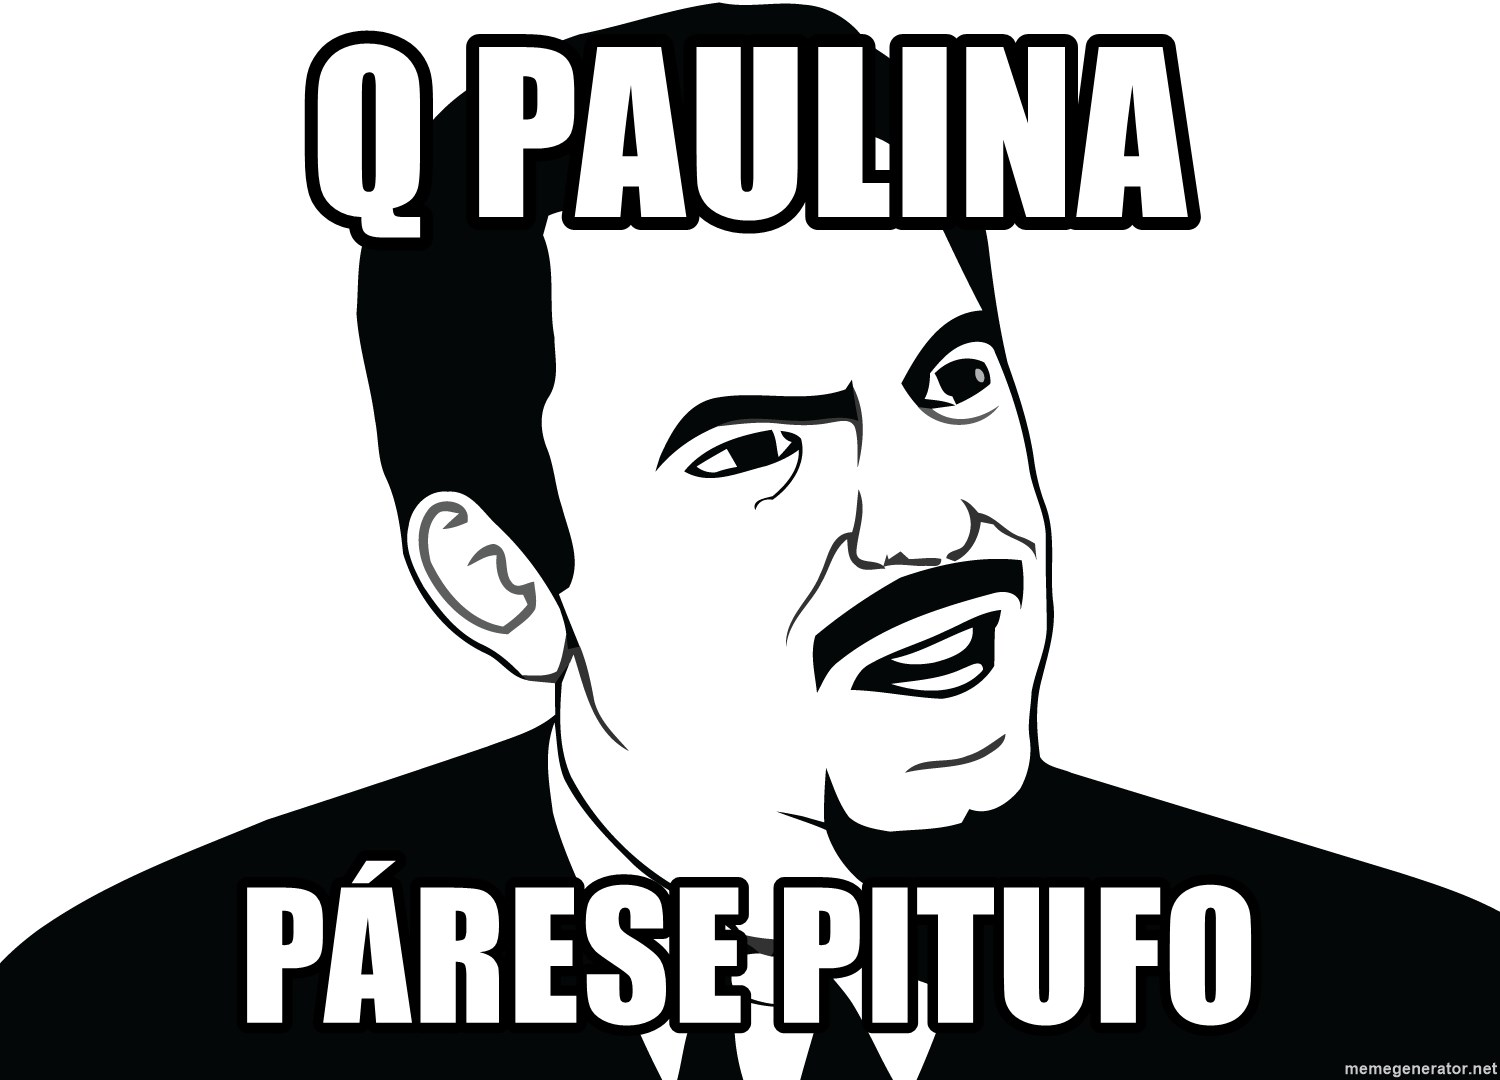 Are you serious face  - Q PAULINA PÁRESE PITUFO